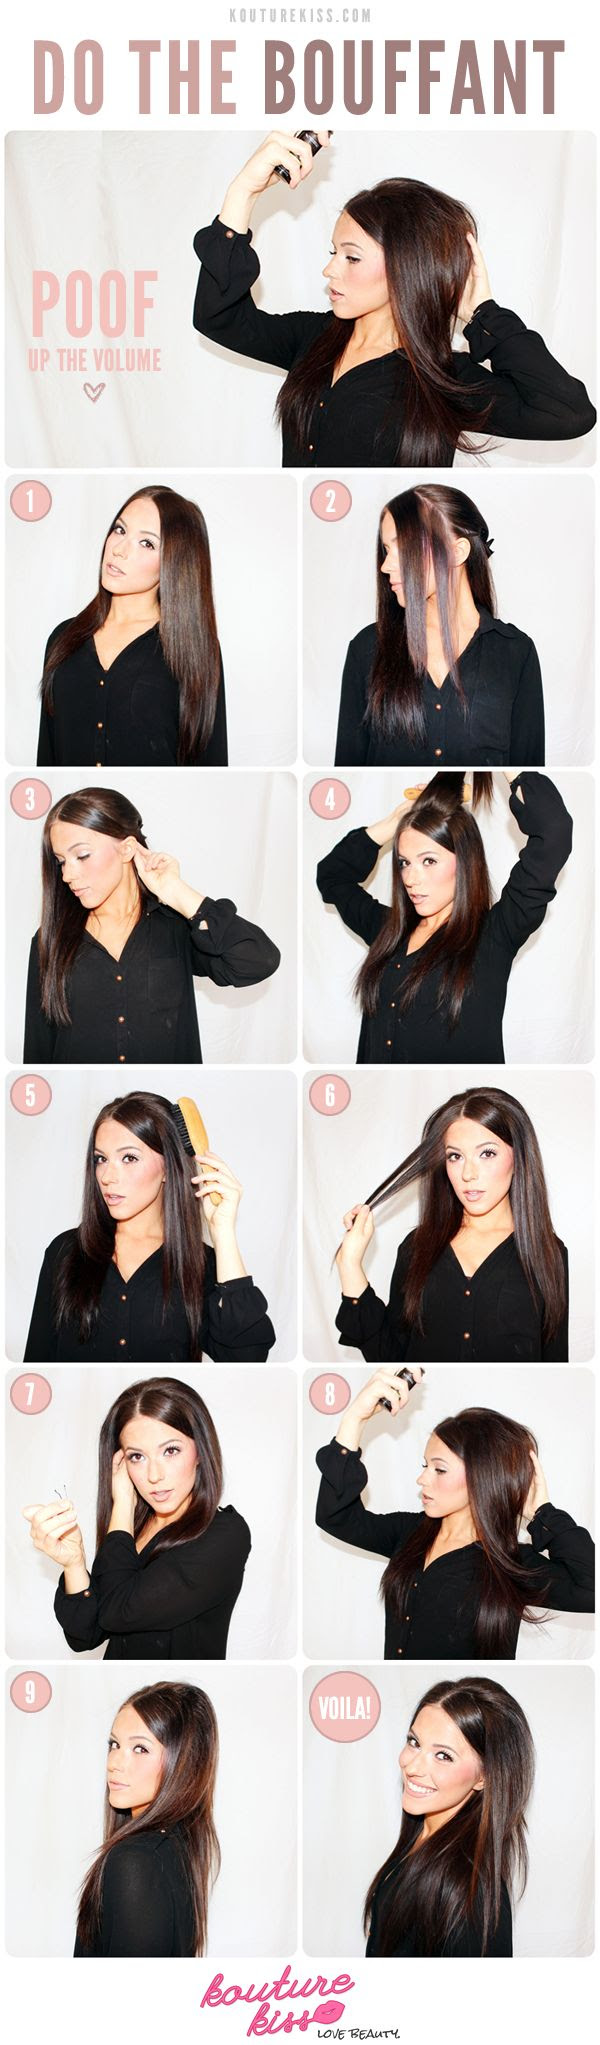 5 Bouffant Hairstyles Tutorials For A Glamorous Look Pretty Designs